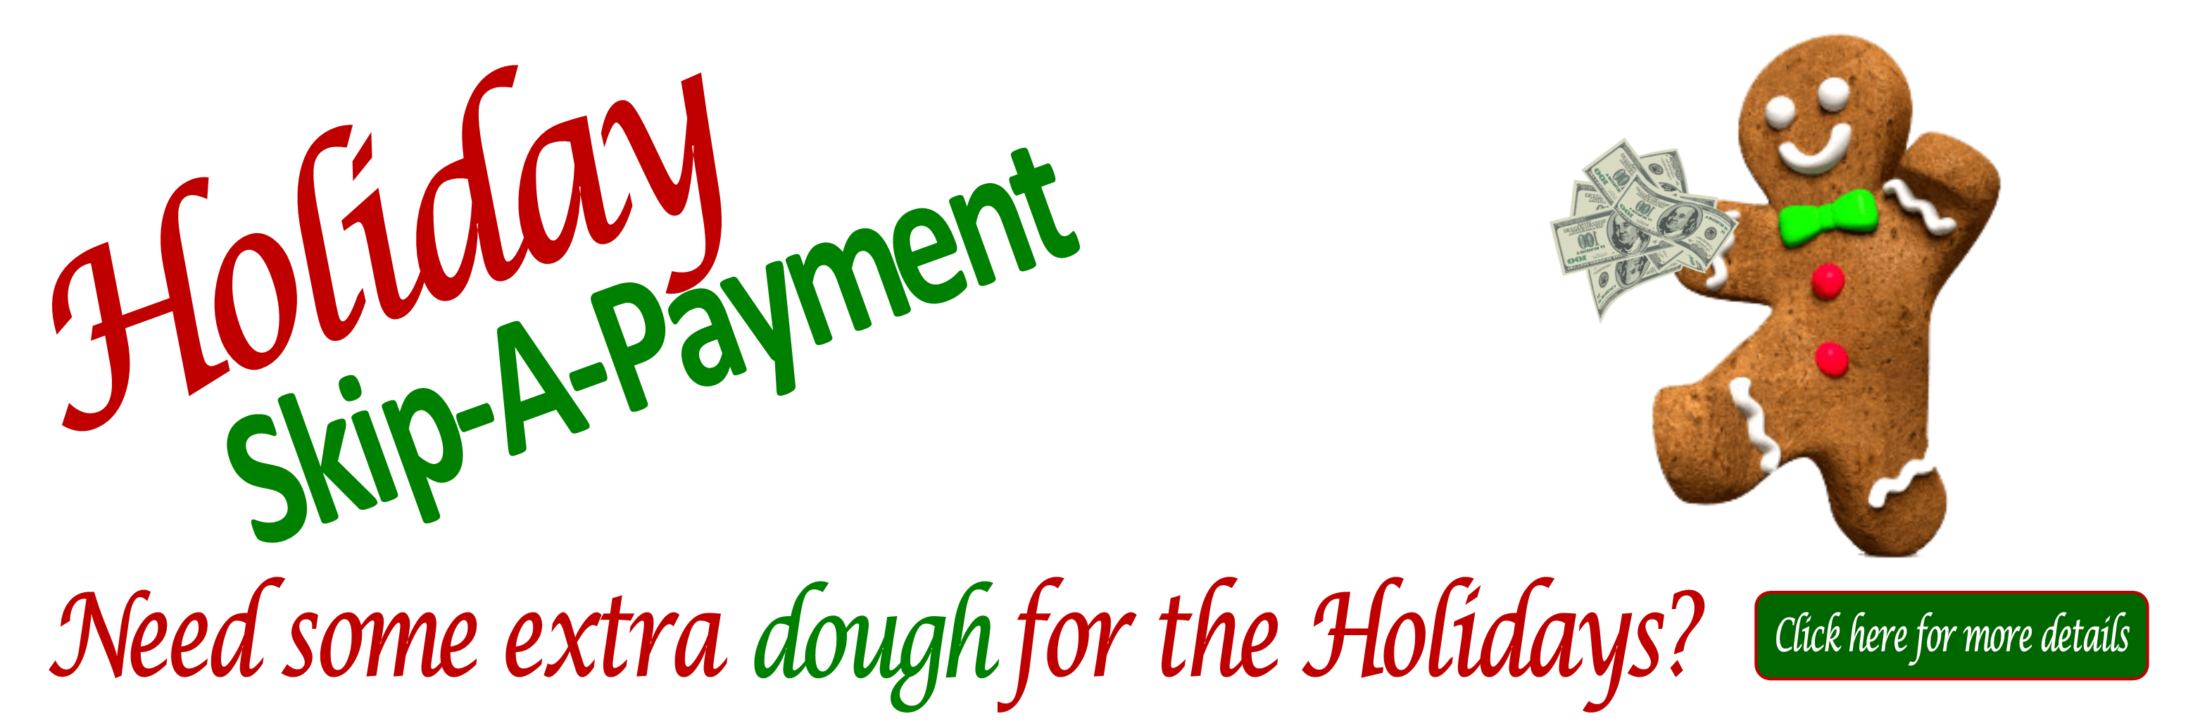 Holiday Skip-a-Payment